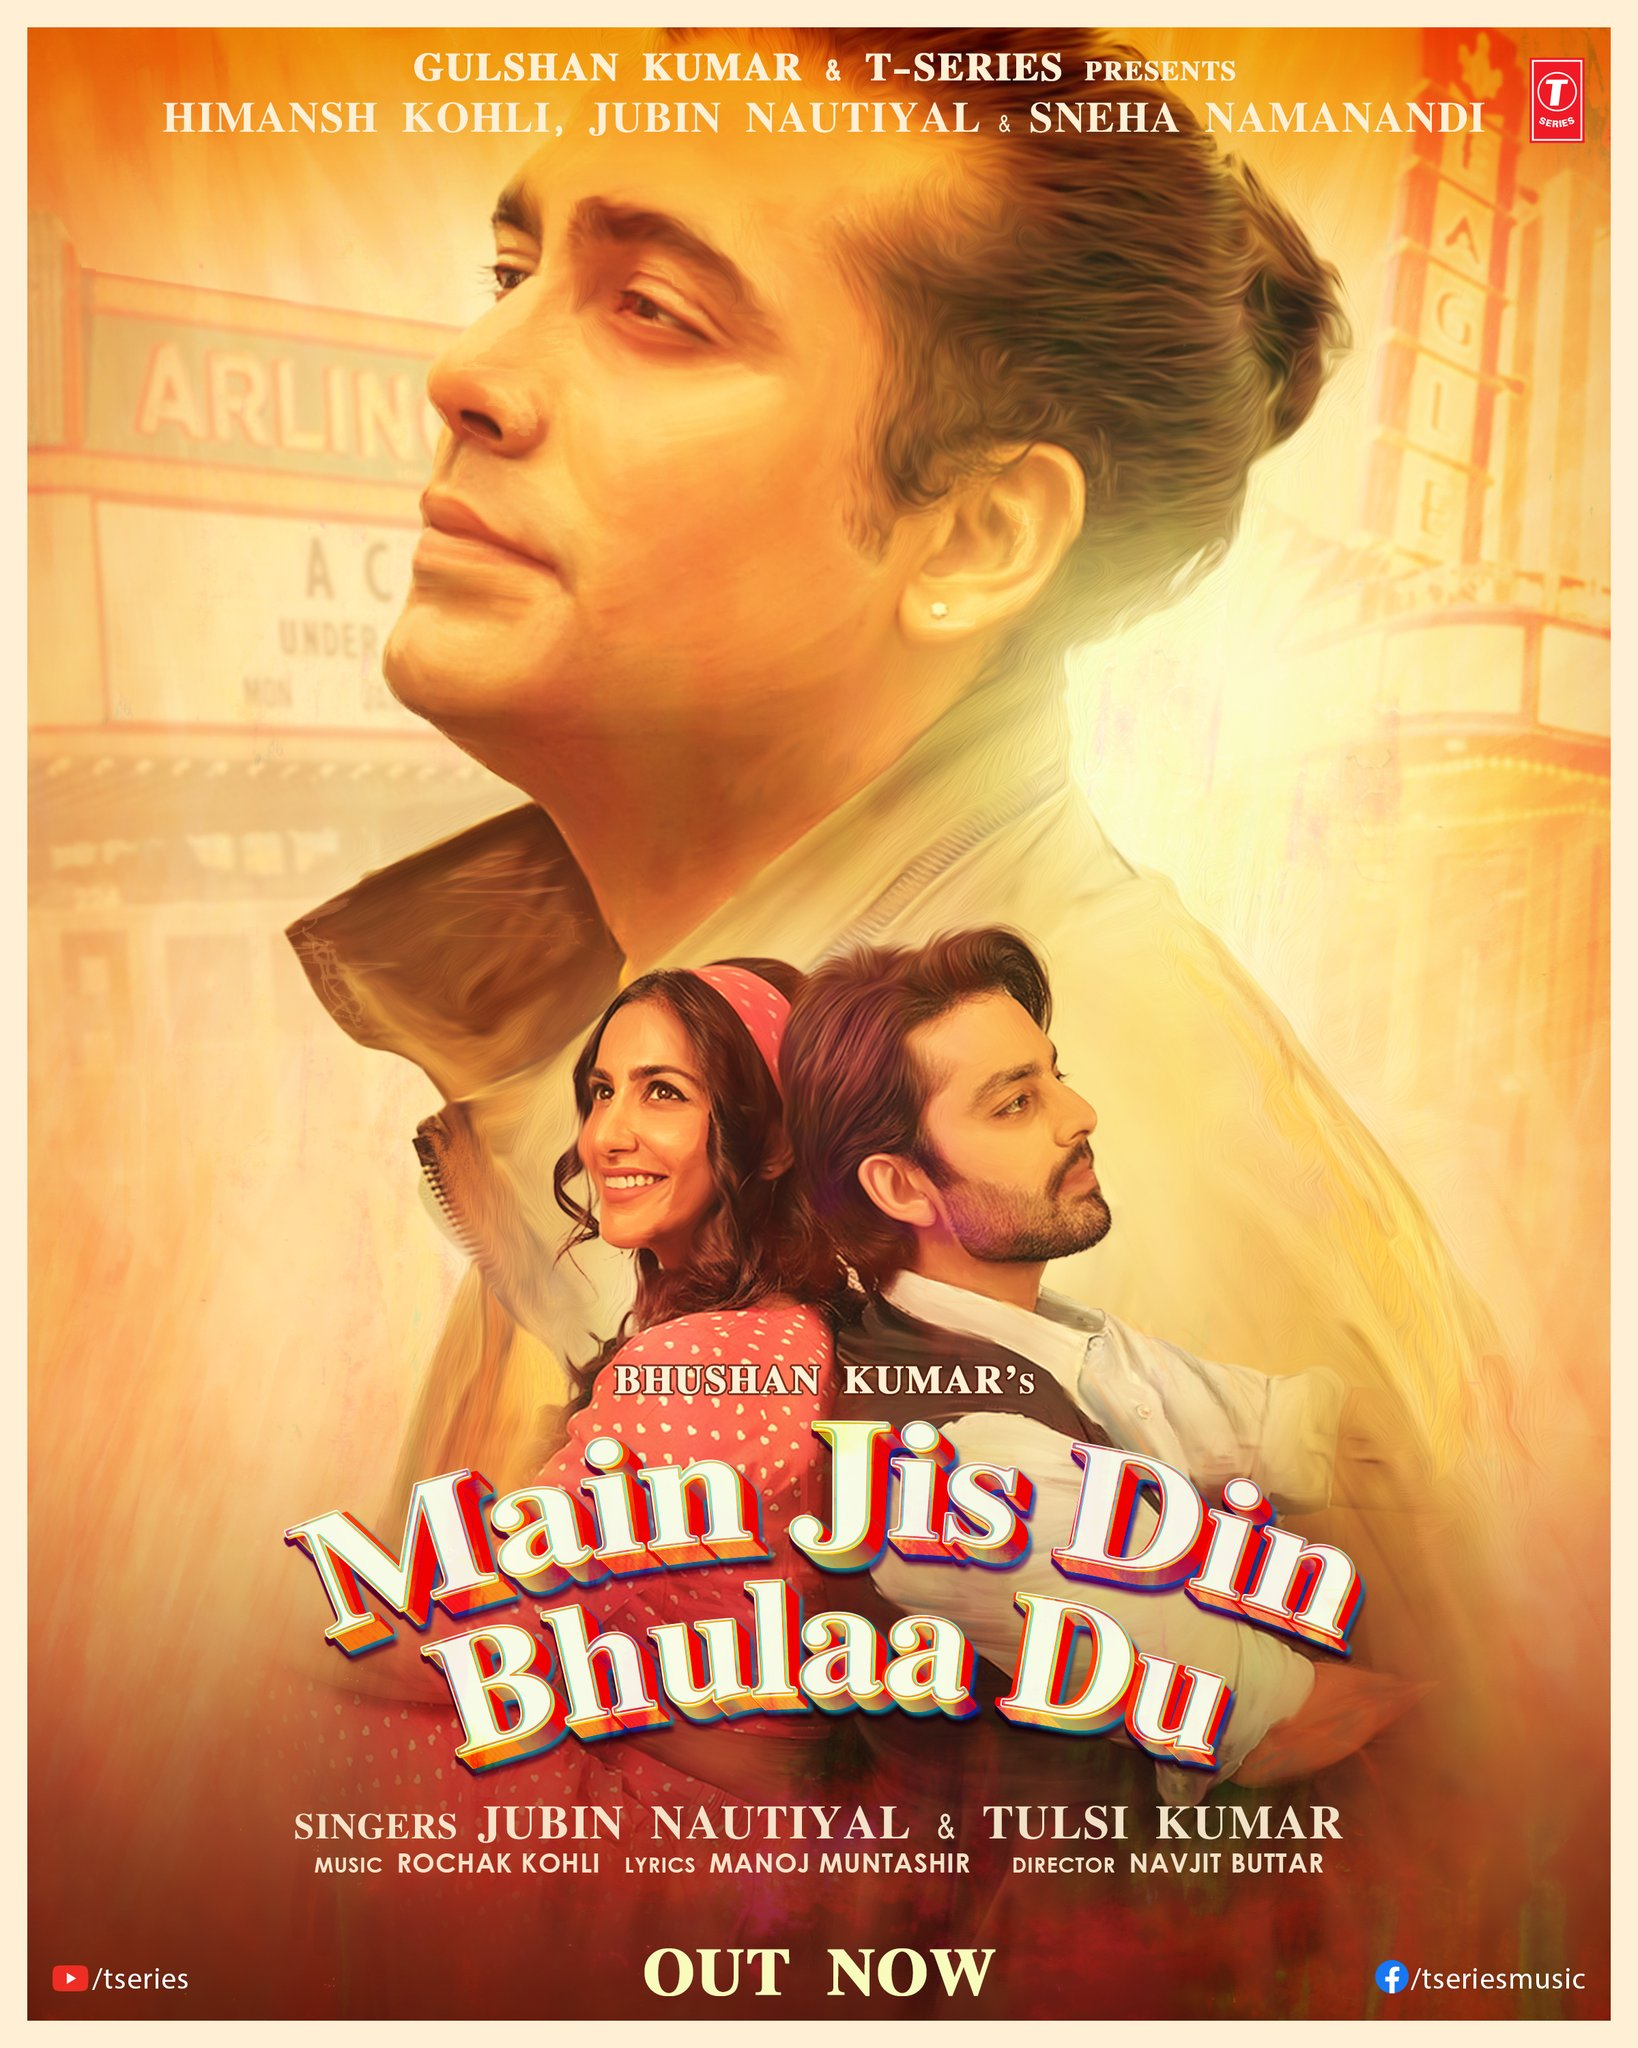 Main Jis Din Bhulaa Du By Jubin Nautiyal & Tulsi Kumar Official Music Video 1080p HDRip 161MB Download